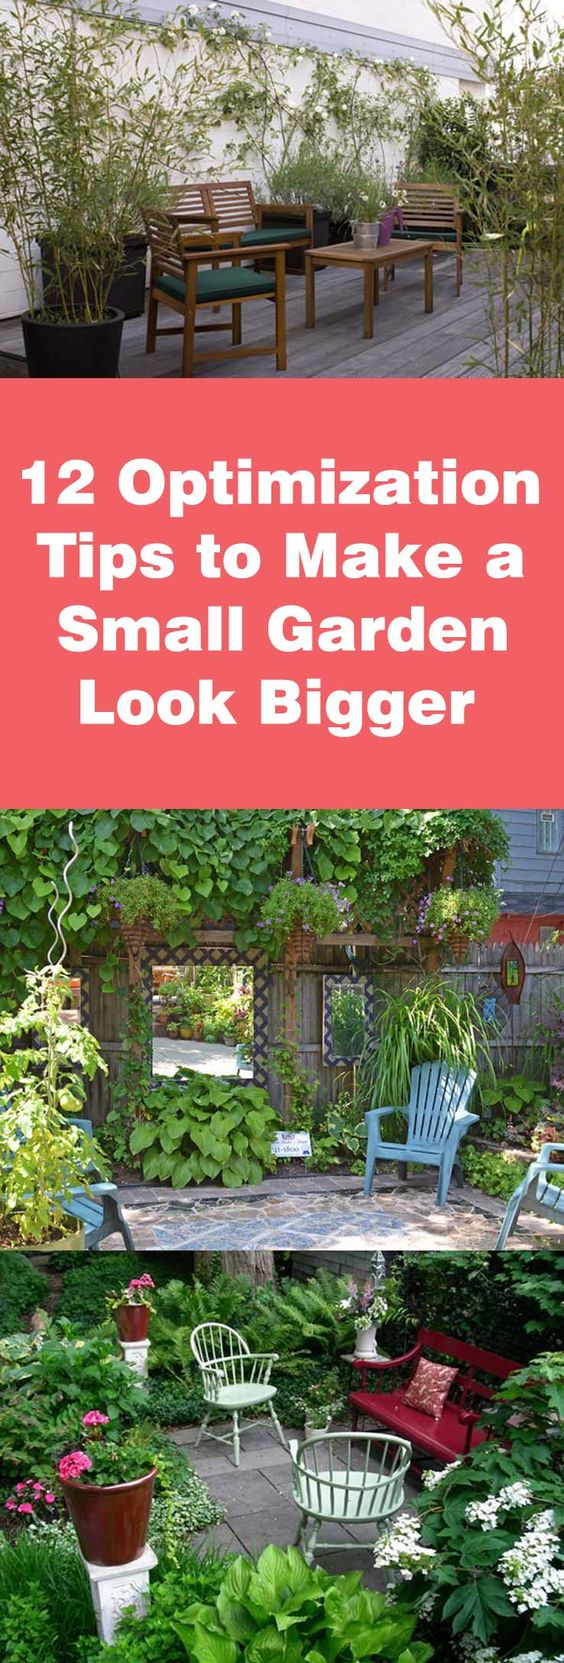 How to make a small garden look bigger gardens rooftops for Limited space gardening ideas